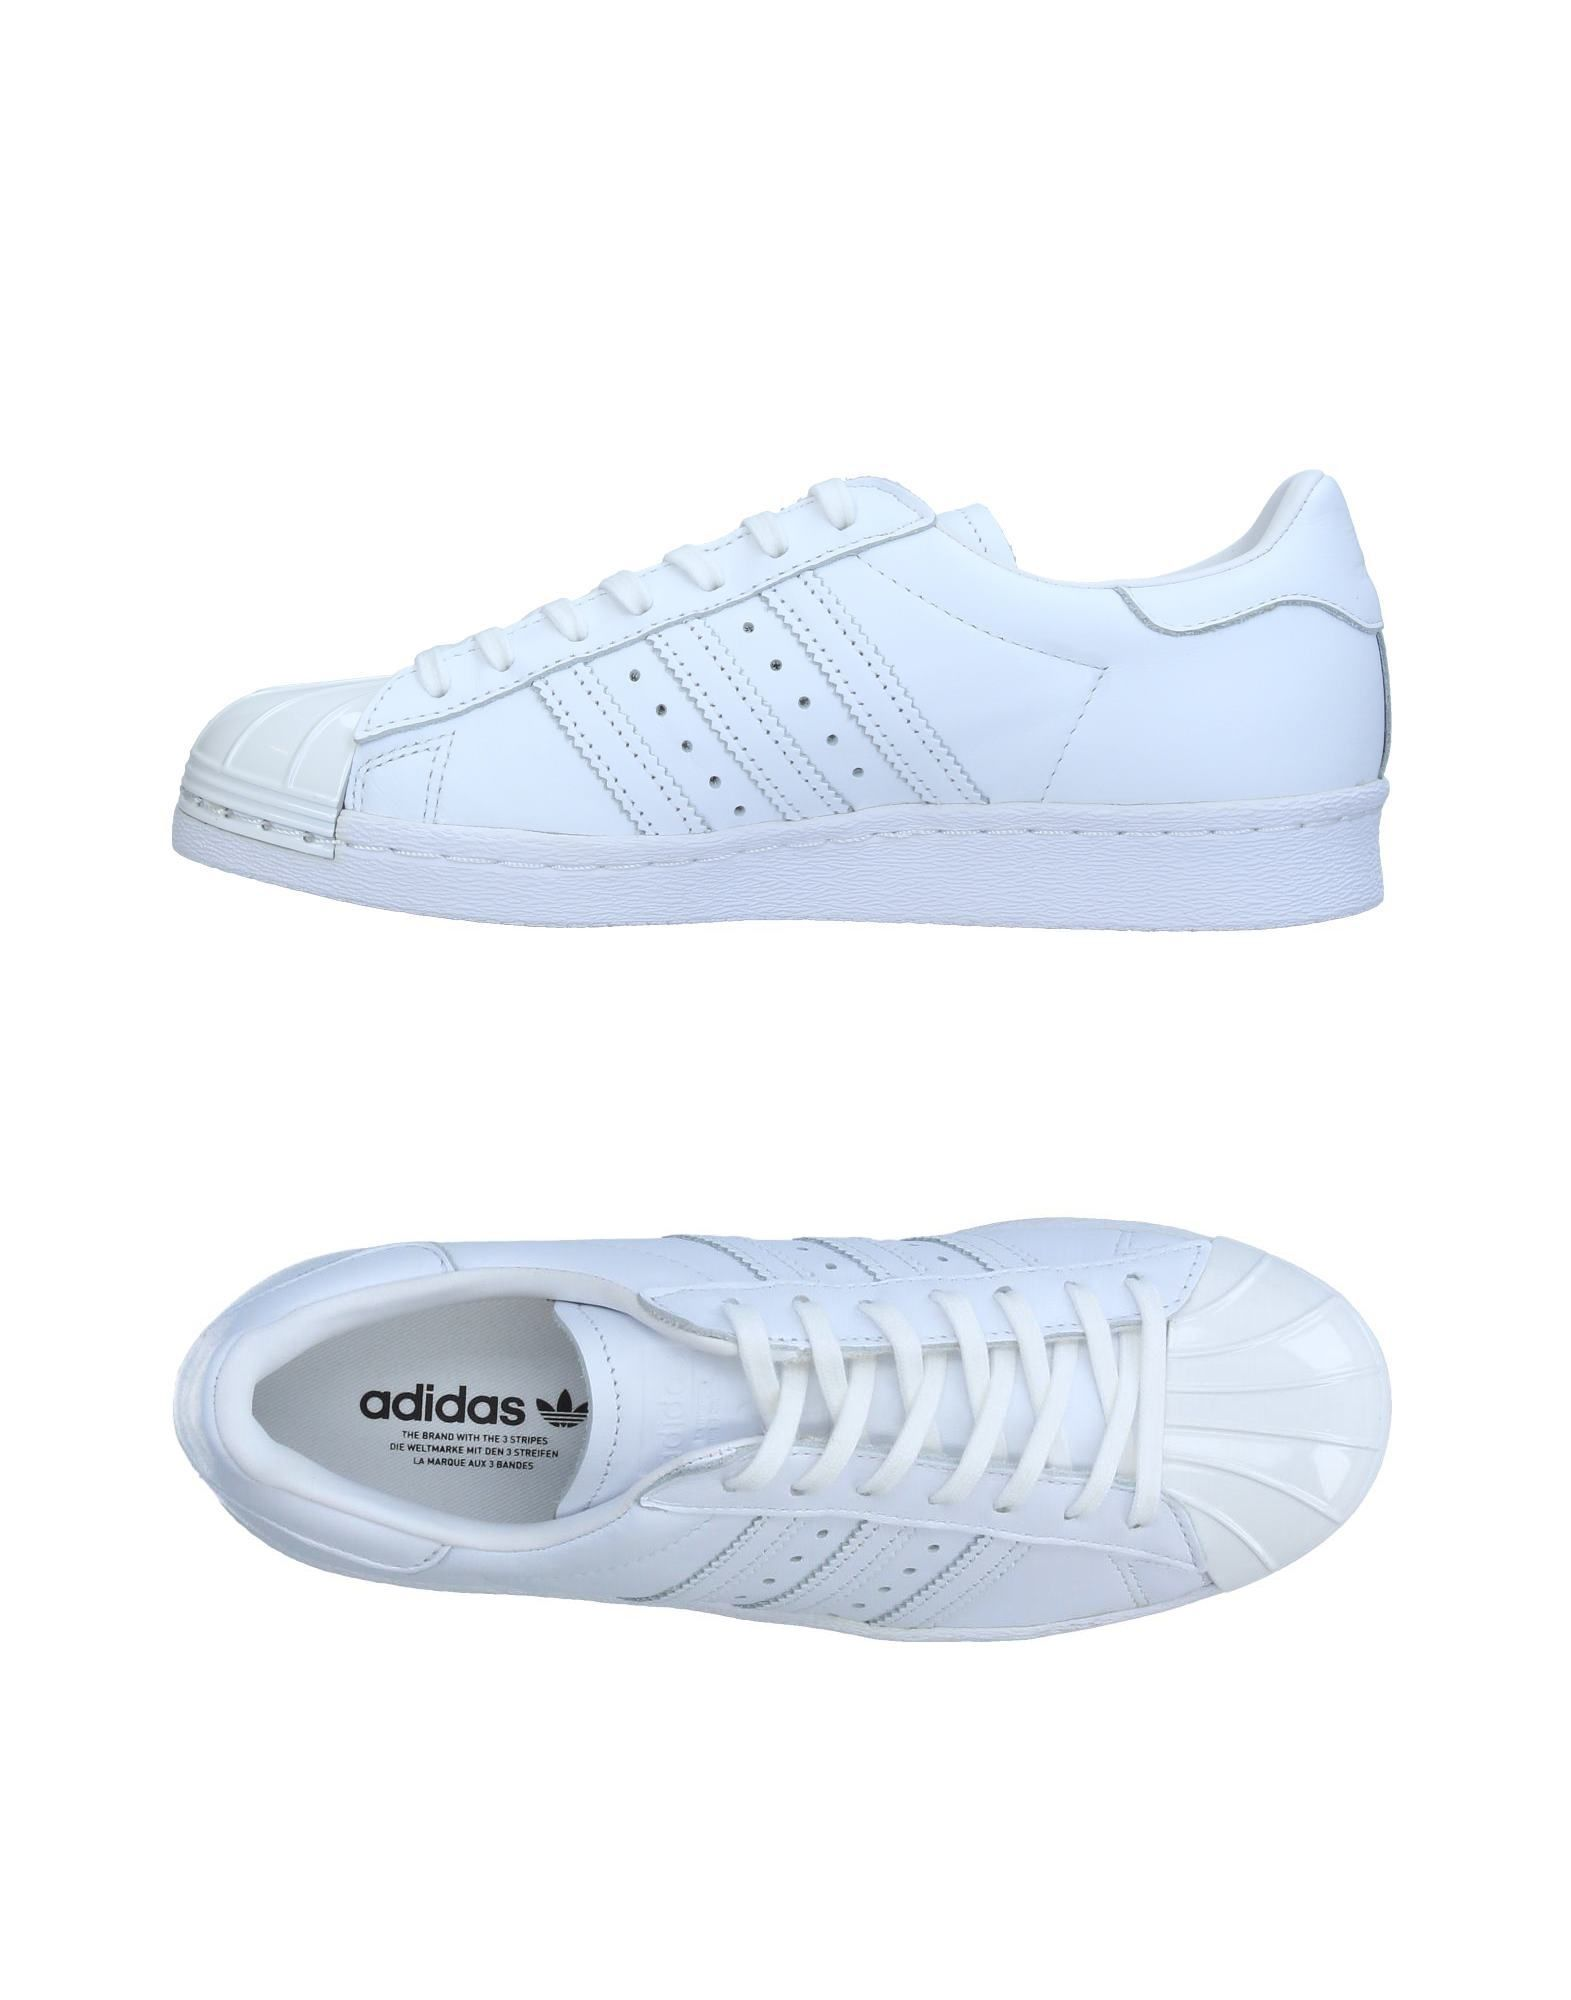 Sneakers Adidas Originals Femme - Sneakers Adidas Originals sur